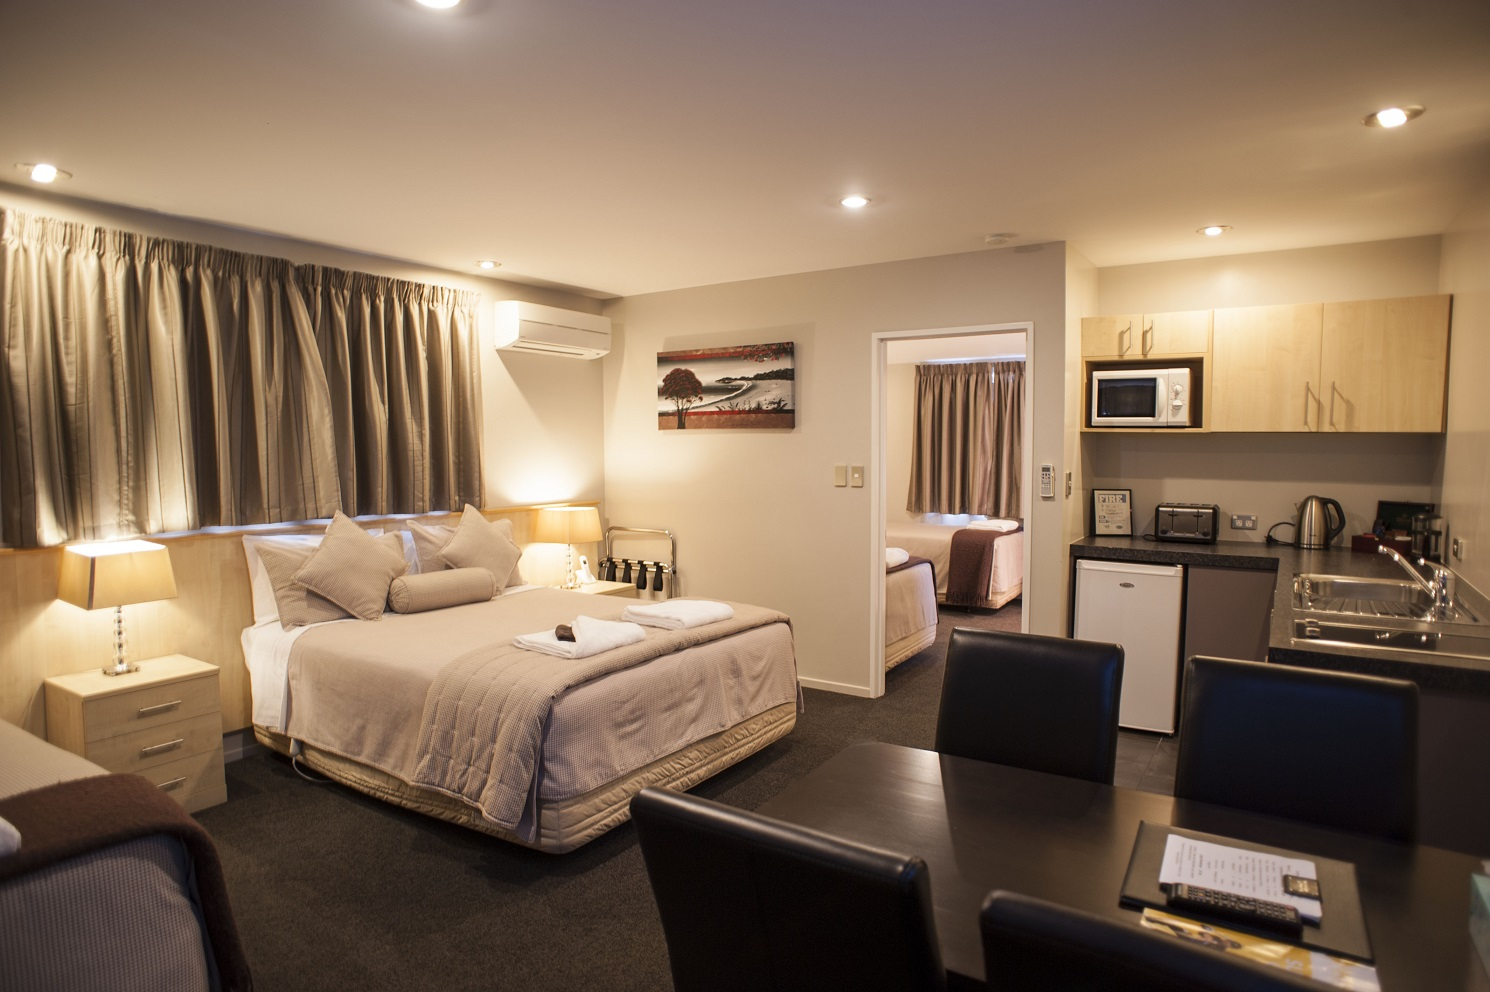 Studio Apt Ideas Christchurch Luxury Apartment Qualmark 5 Star 1 Bedroom